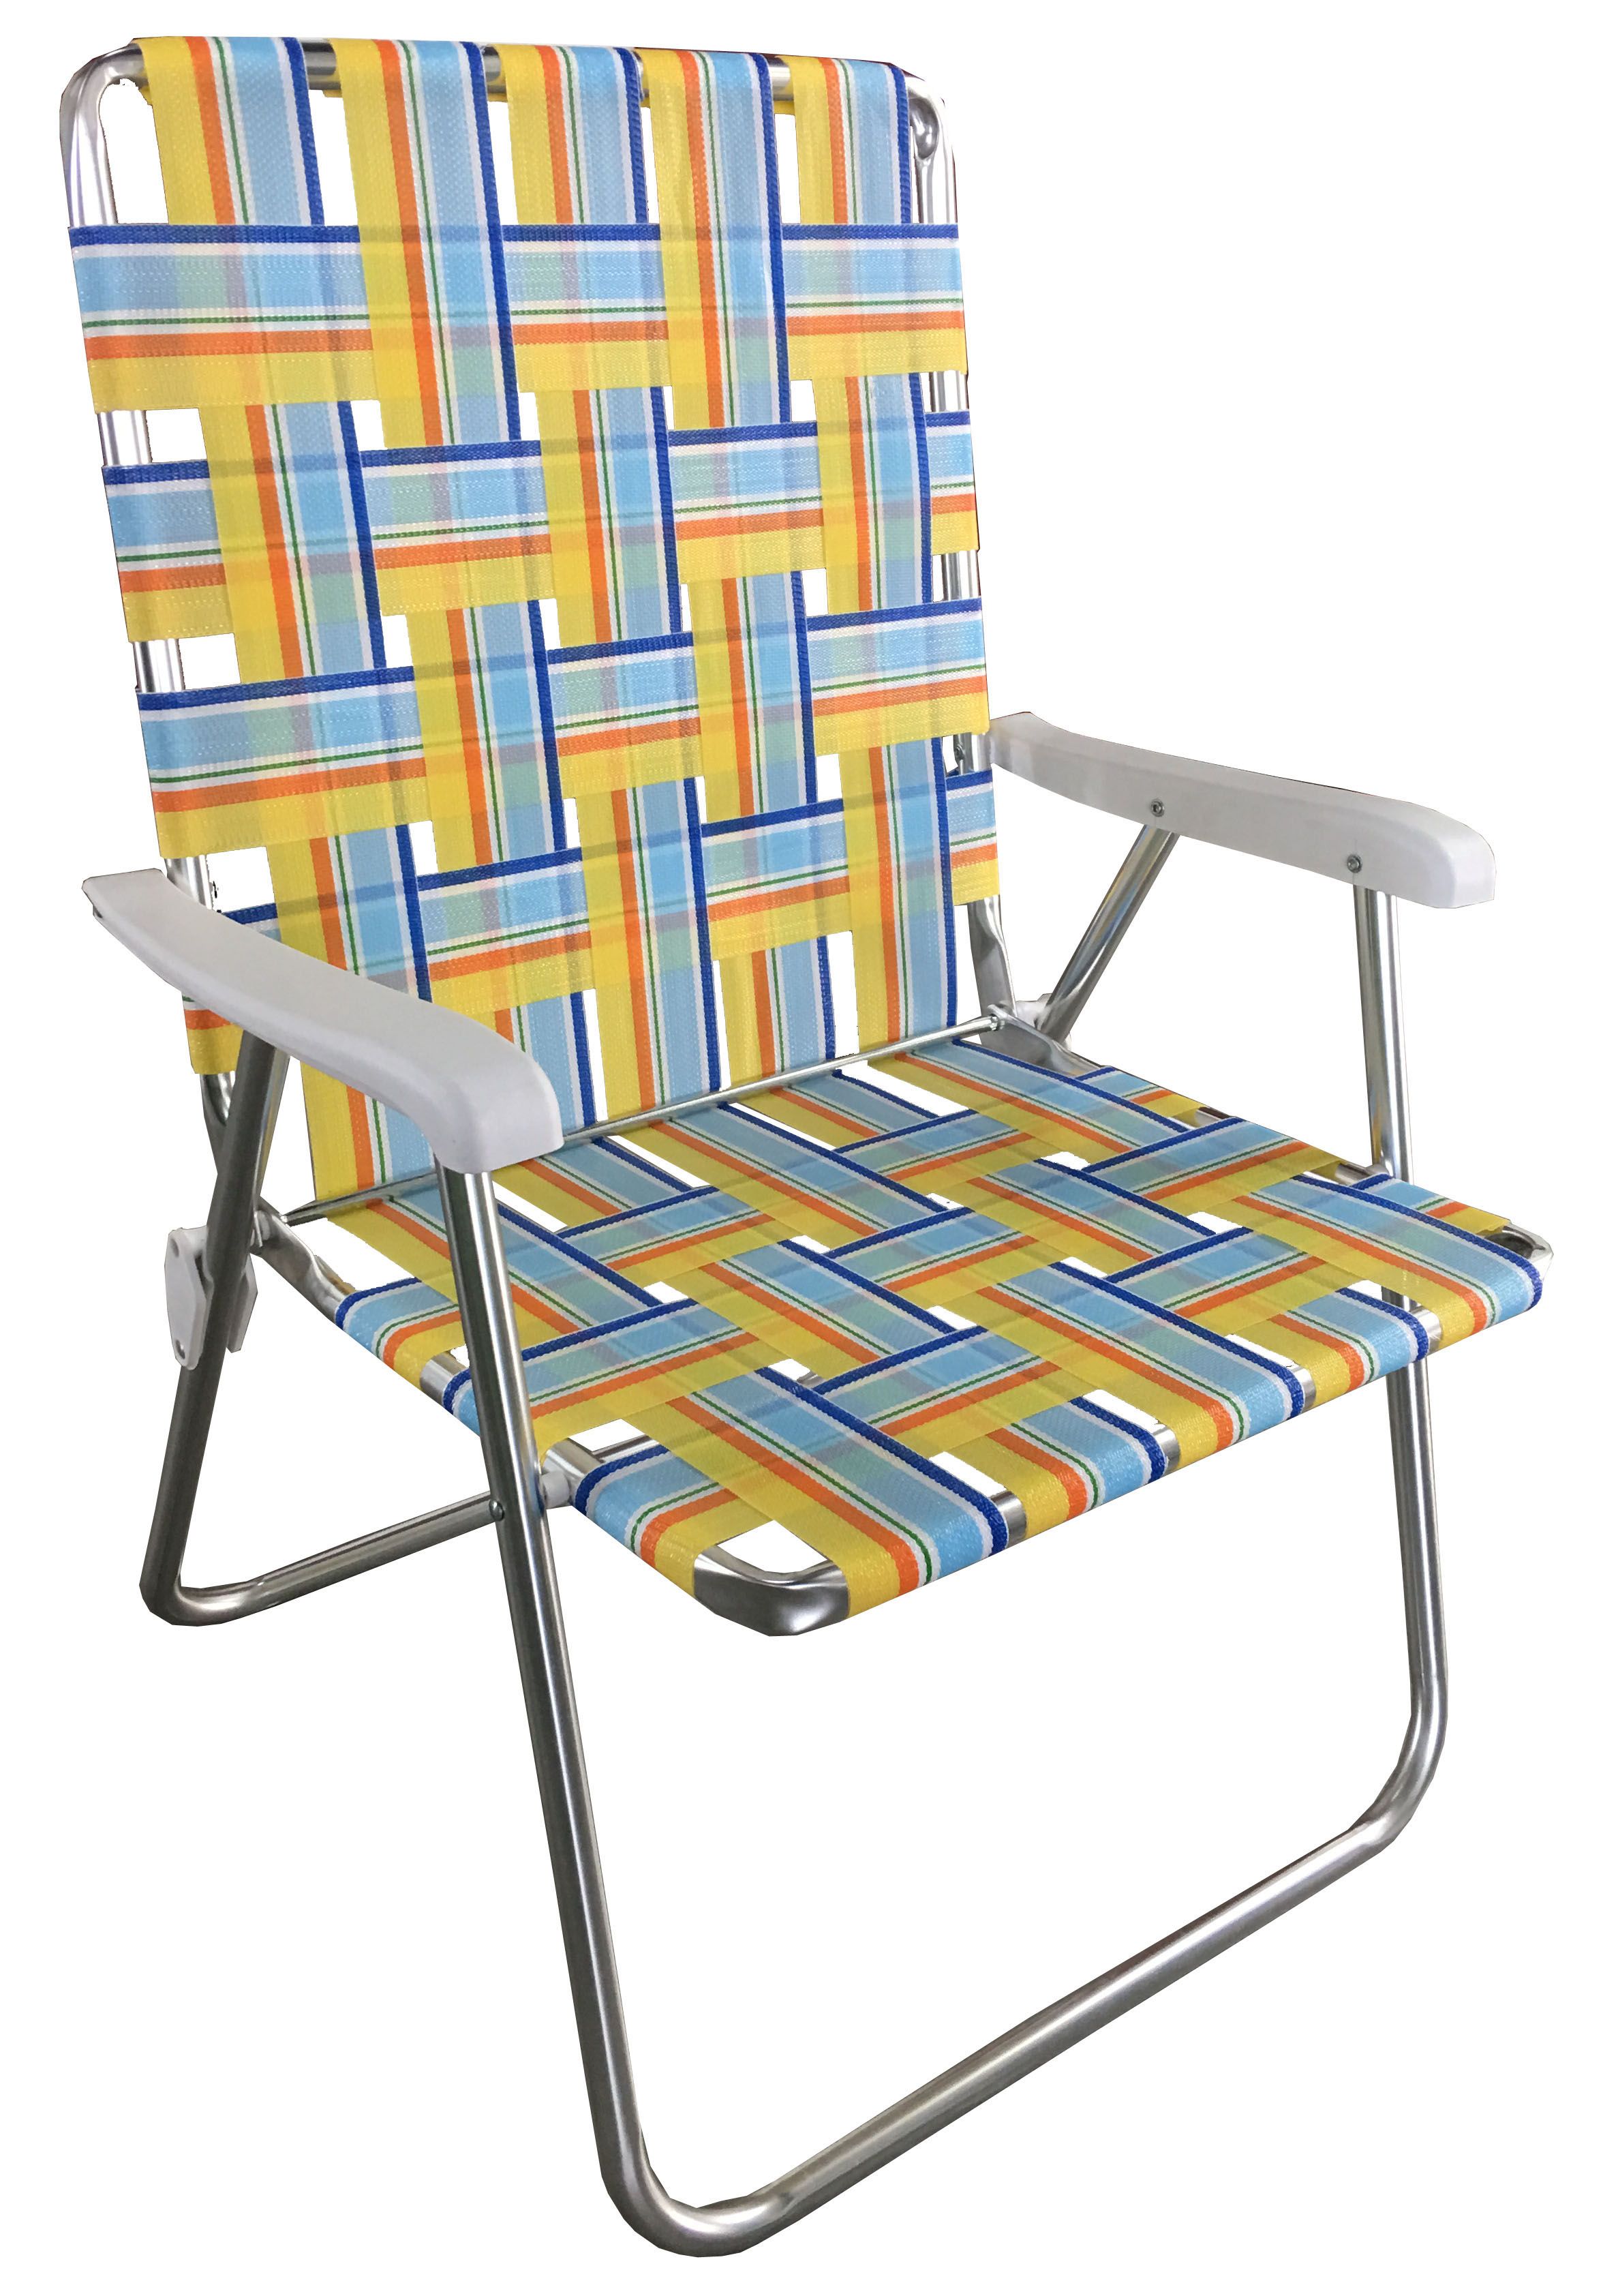 Aluminum Folding Chair Mainstays Ms Aluminum Web Chair Color May Vary